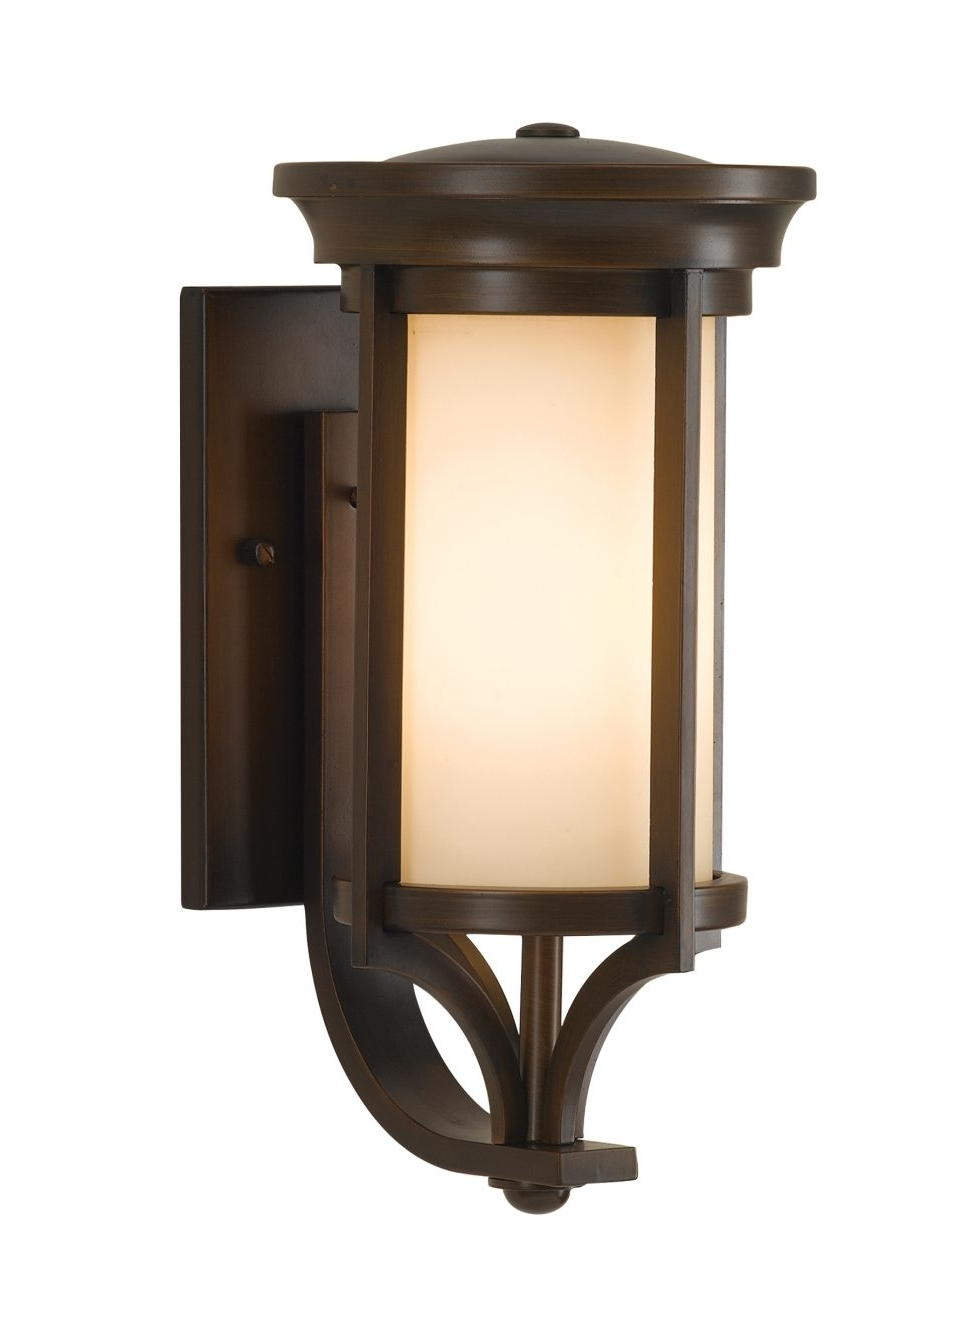 Favorite Outdoor Ceiling Light With Electrical Outlet With Electrical Wiring : Guiding Outdoor Ceiling Light Fixture With (View 6 of 20)